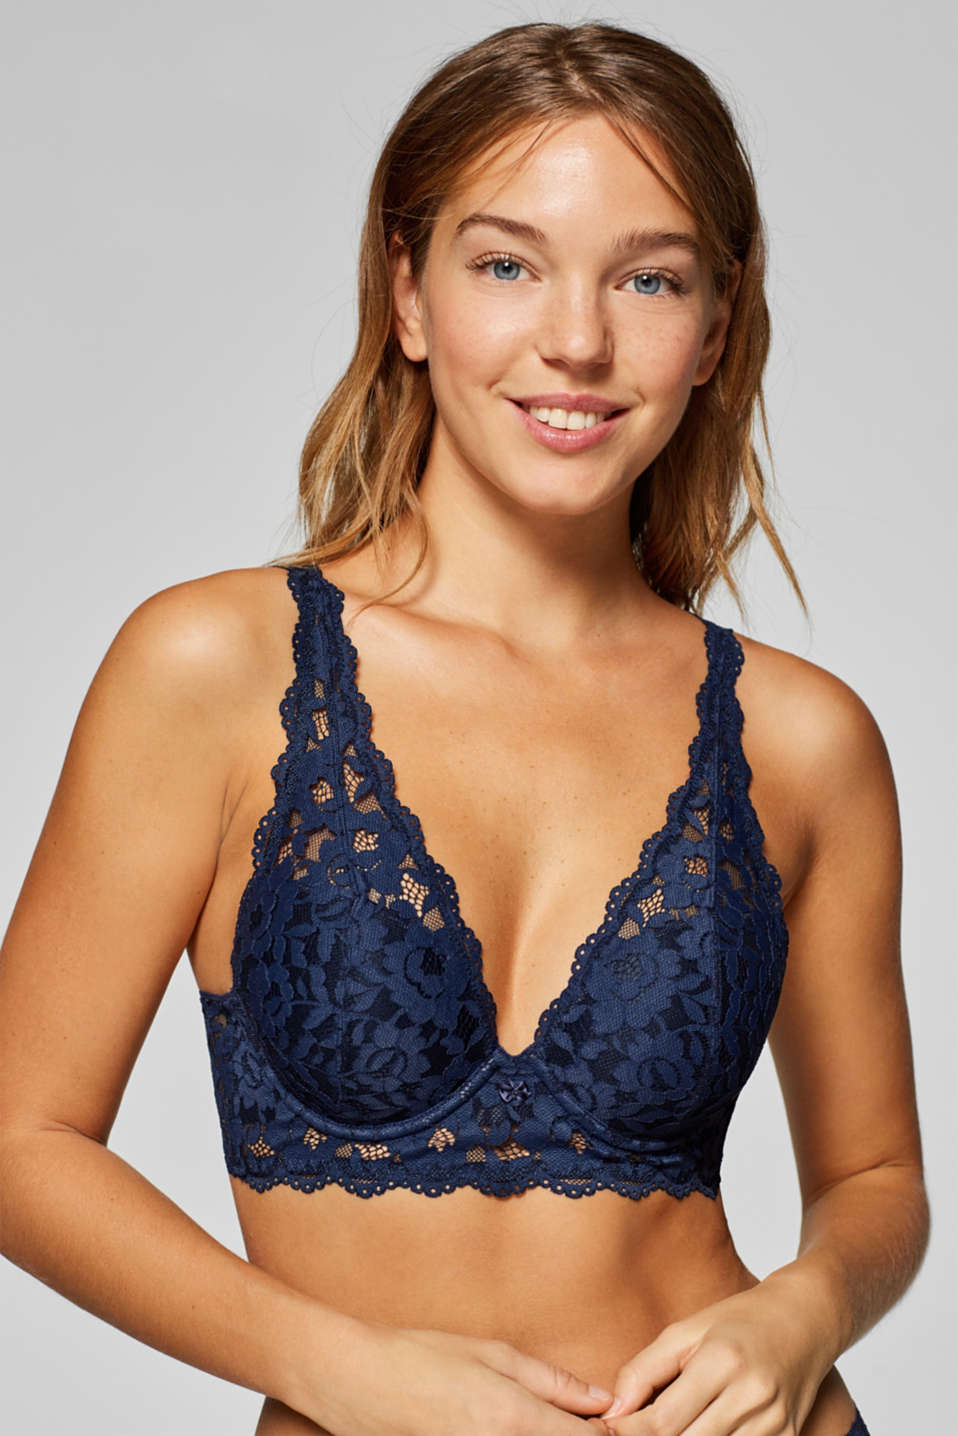 Esprit - Heavily padded push-up bra made of lace